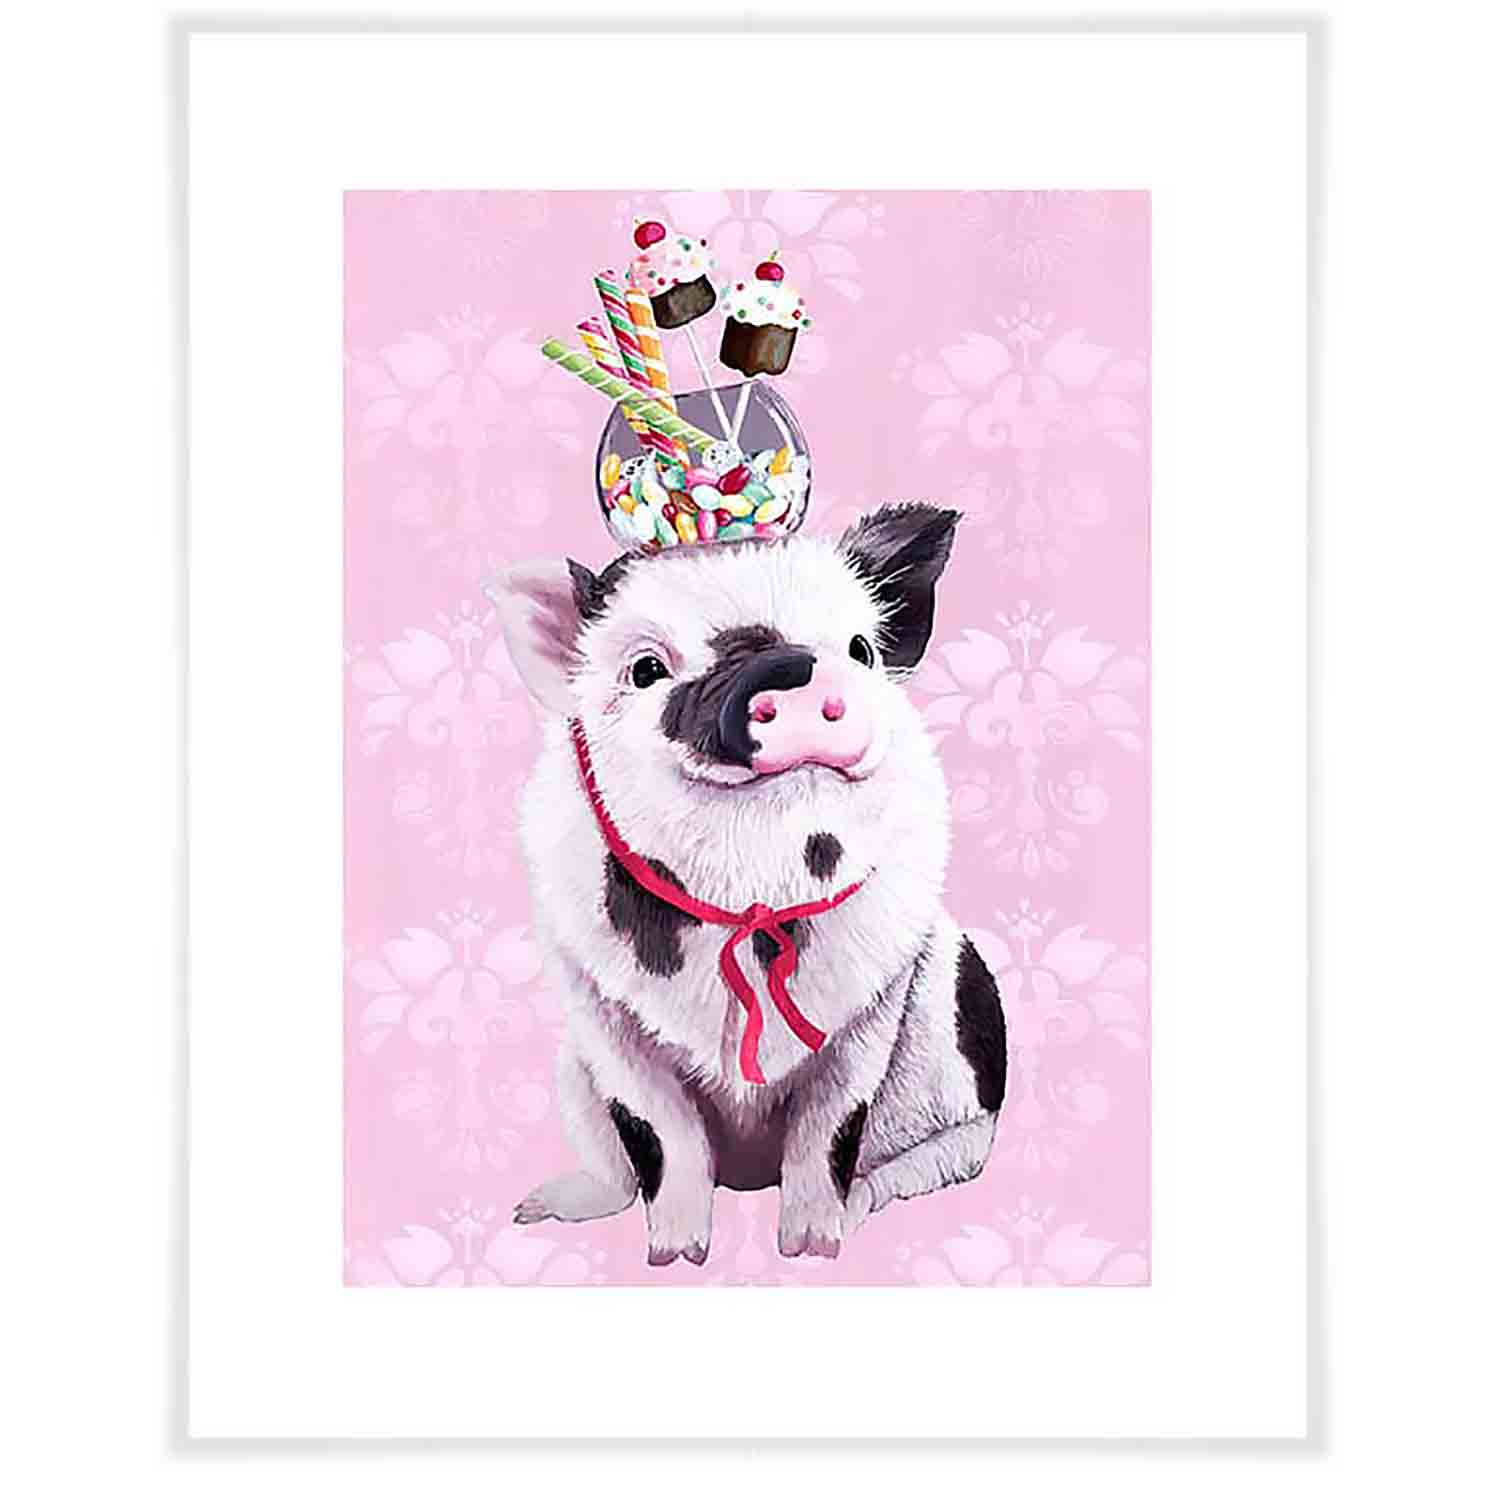 William Has A Sweet Tooth Art Print - Pink